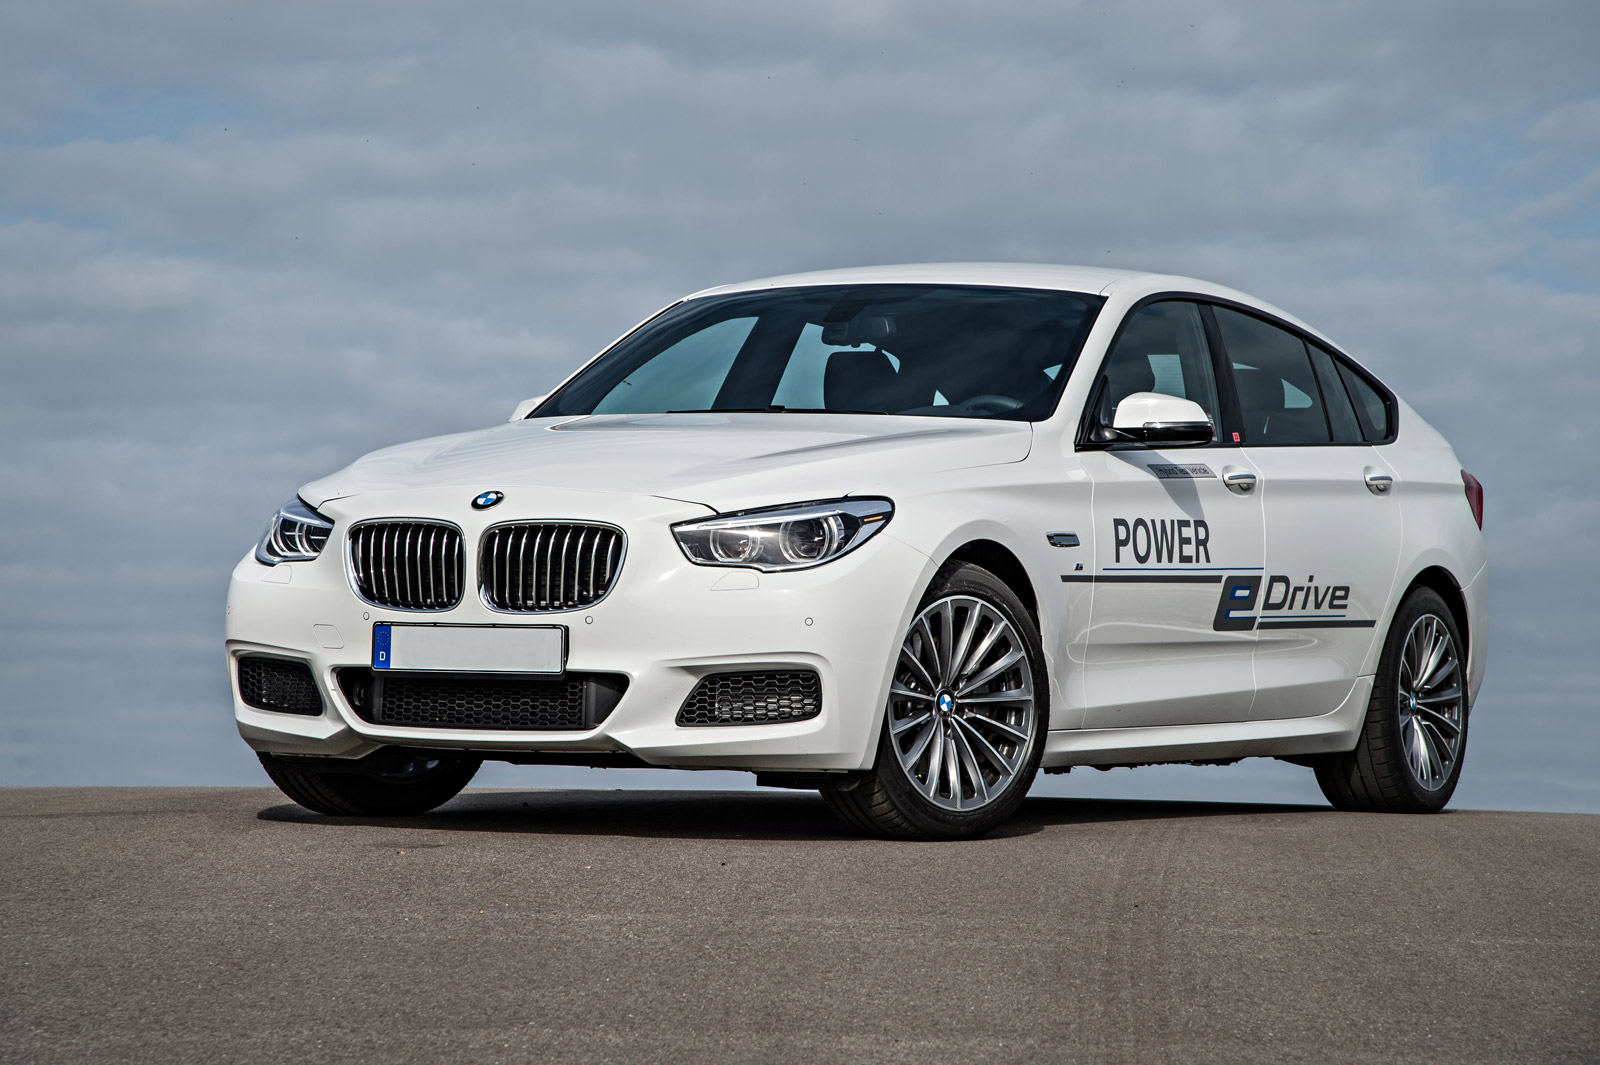 Bmw Previews 670 Horsepower Plug In Hybrid System In 5 Series Gt Prototype